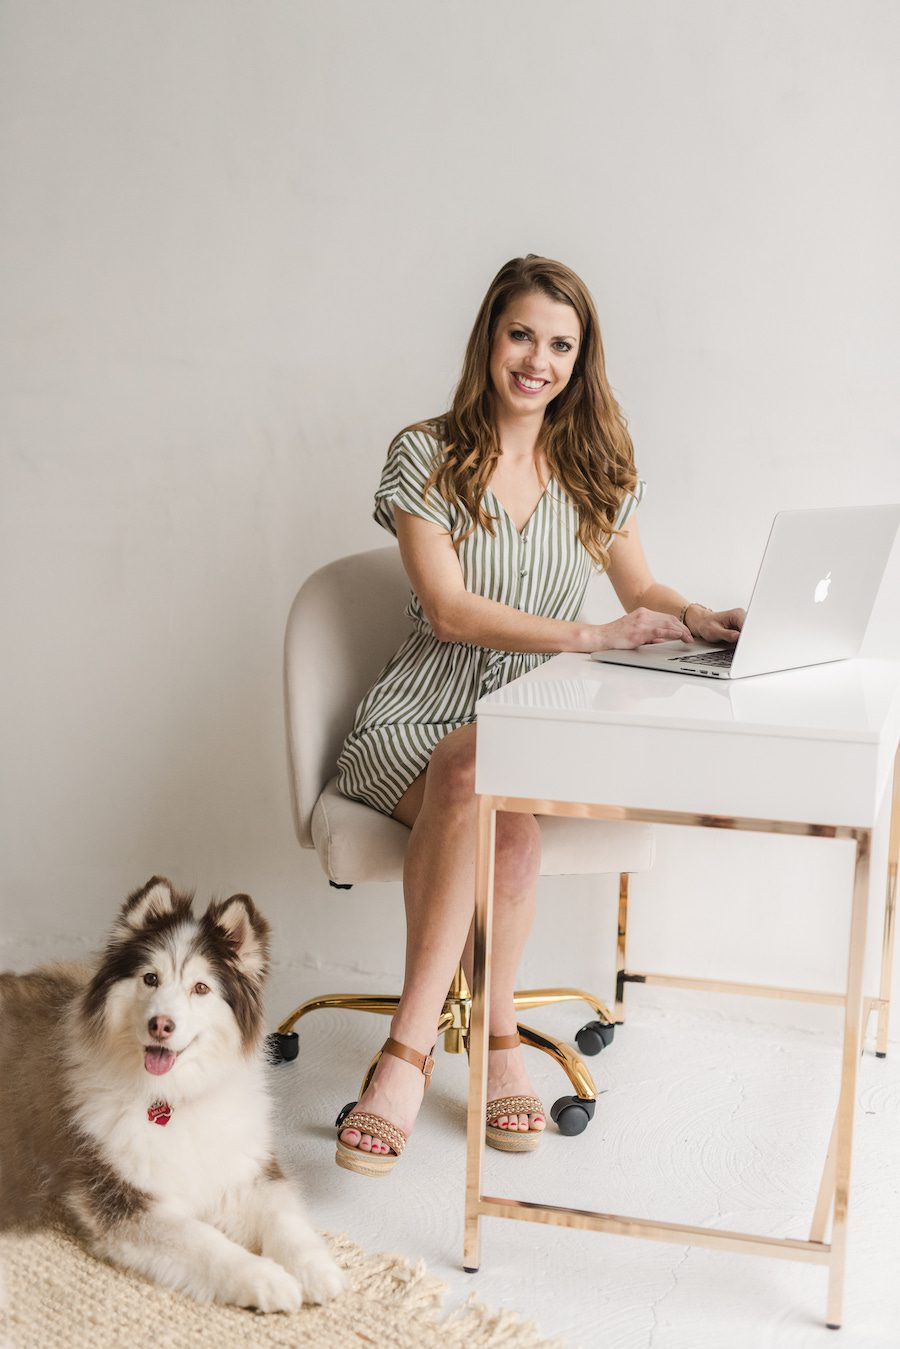 Smiling woman sitting on an ivory rolling office chair typing on a macbook air on a sleek white desk while a brown and white Siberian Husky sits by her side